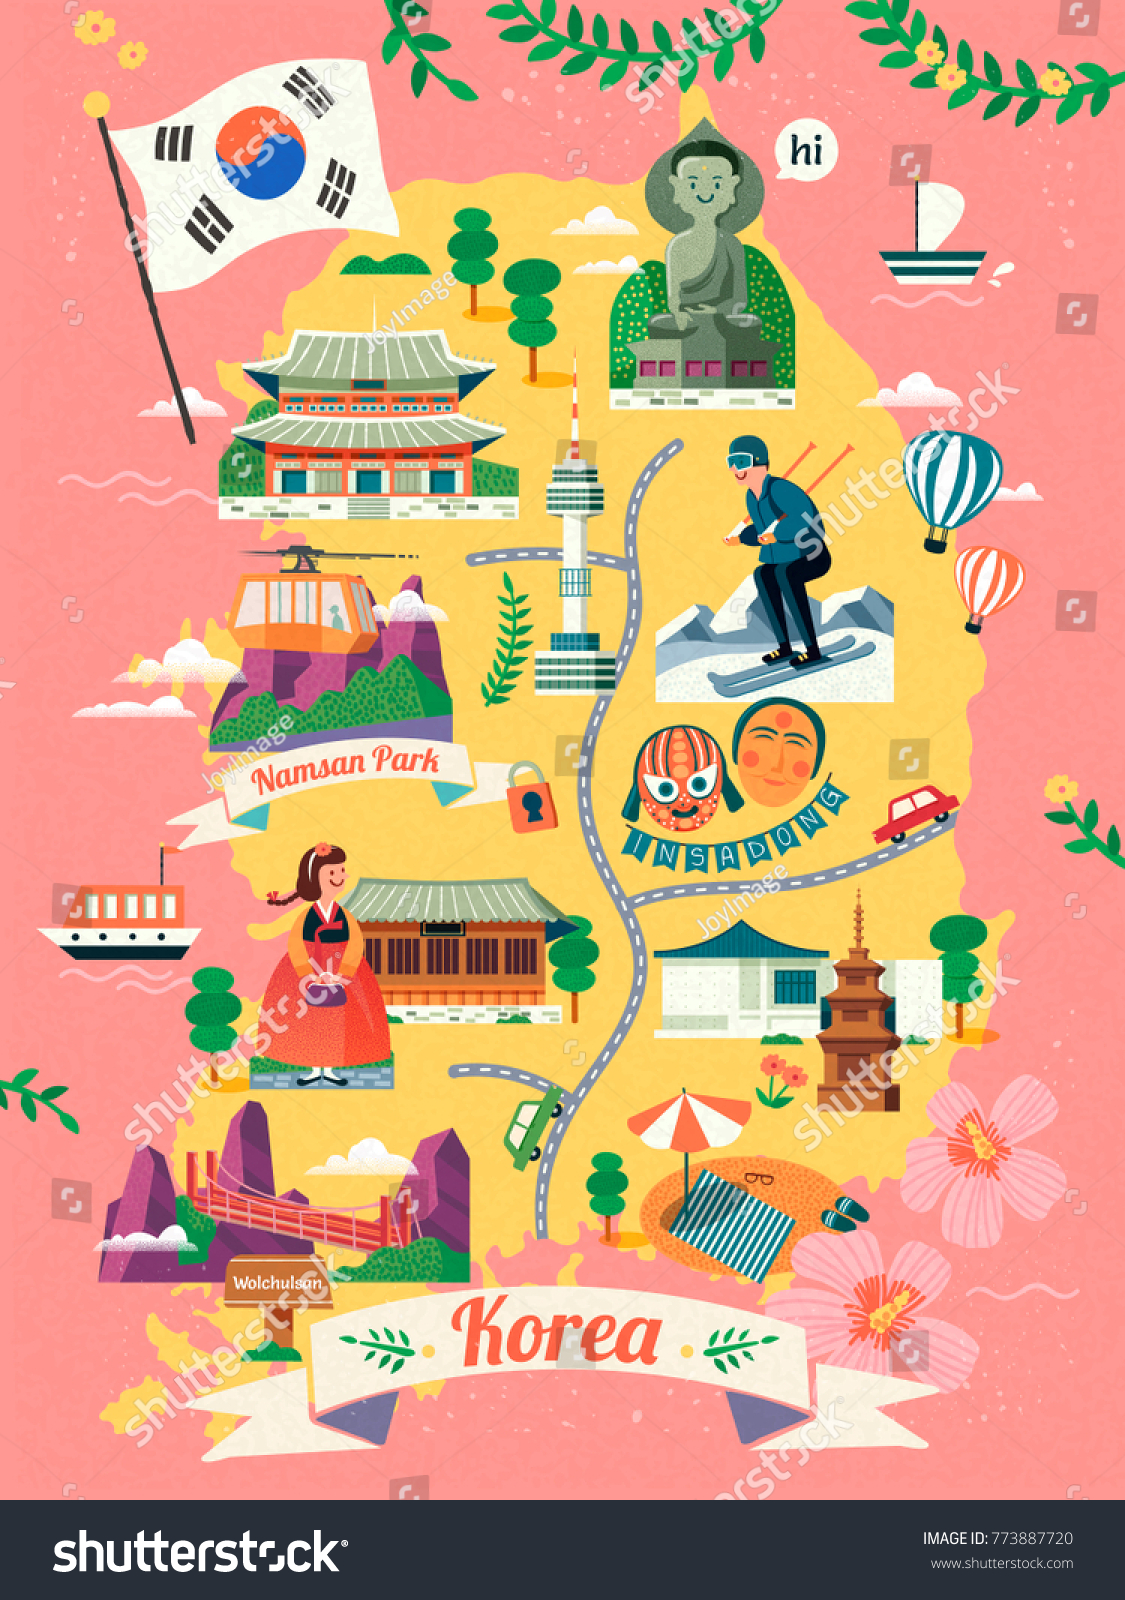 Korea travel map lovely korea famous stock vector 773887720 korea travel map lovely korea famous landmark and culture symbol on map in flat design biocorpaavc Image collections